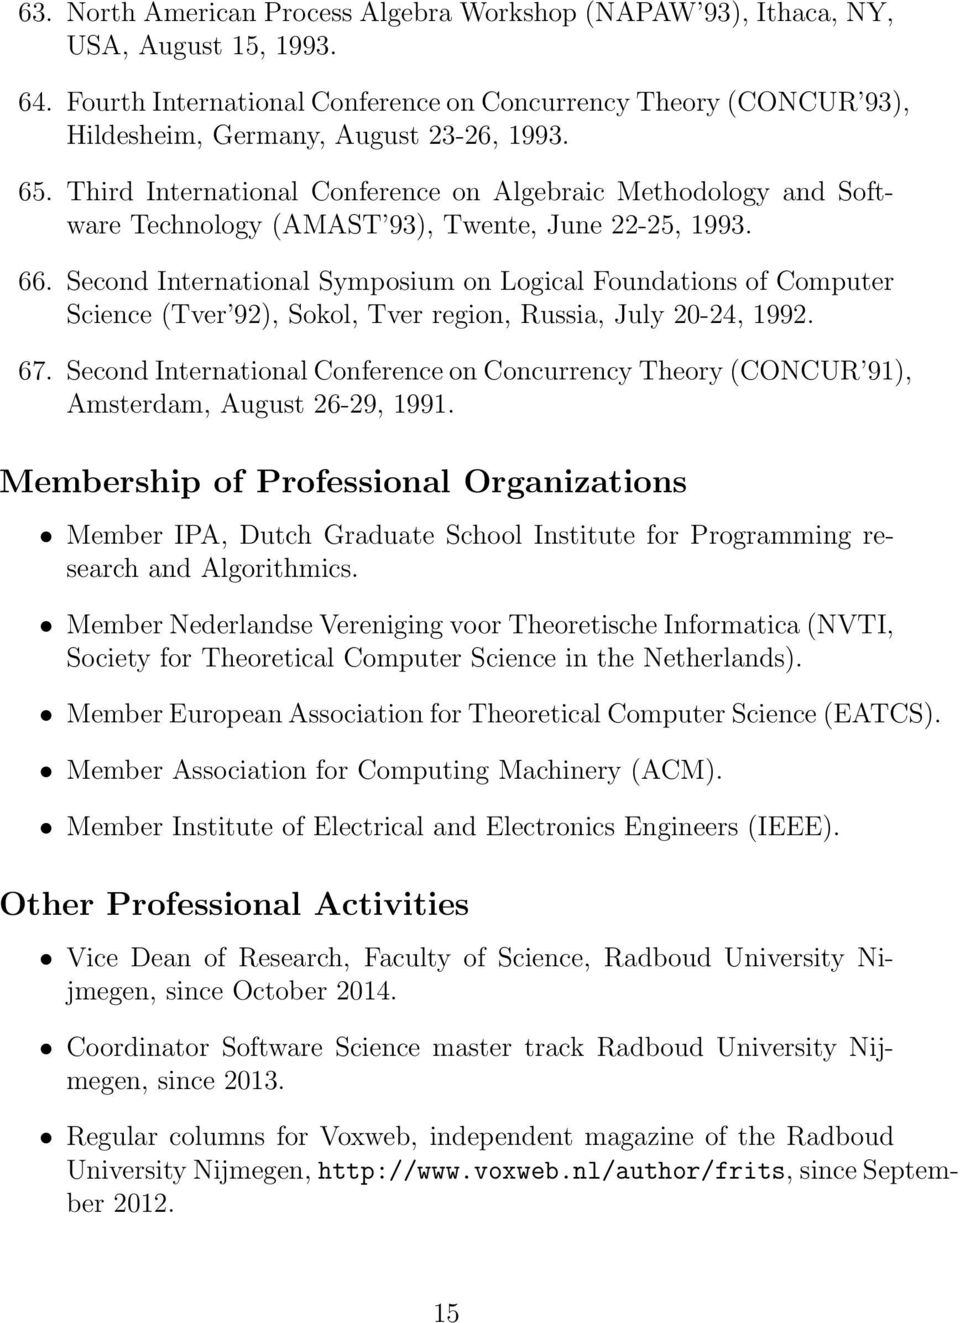 Third International Conference on Algebraic Methodology and Software Technology (AMAST 93), Twente, June 22-25, 1993. 66.